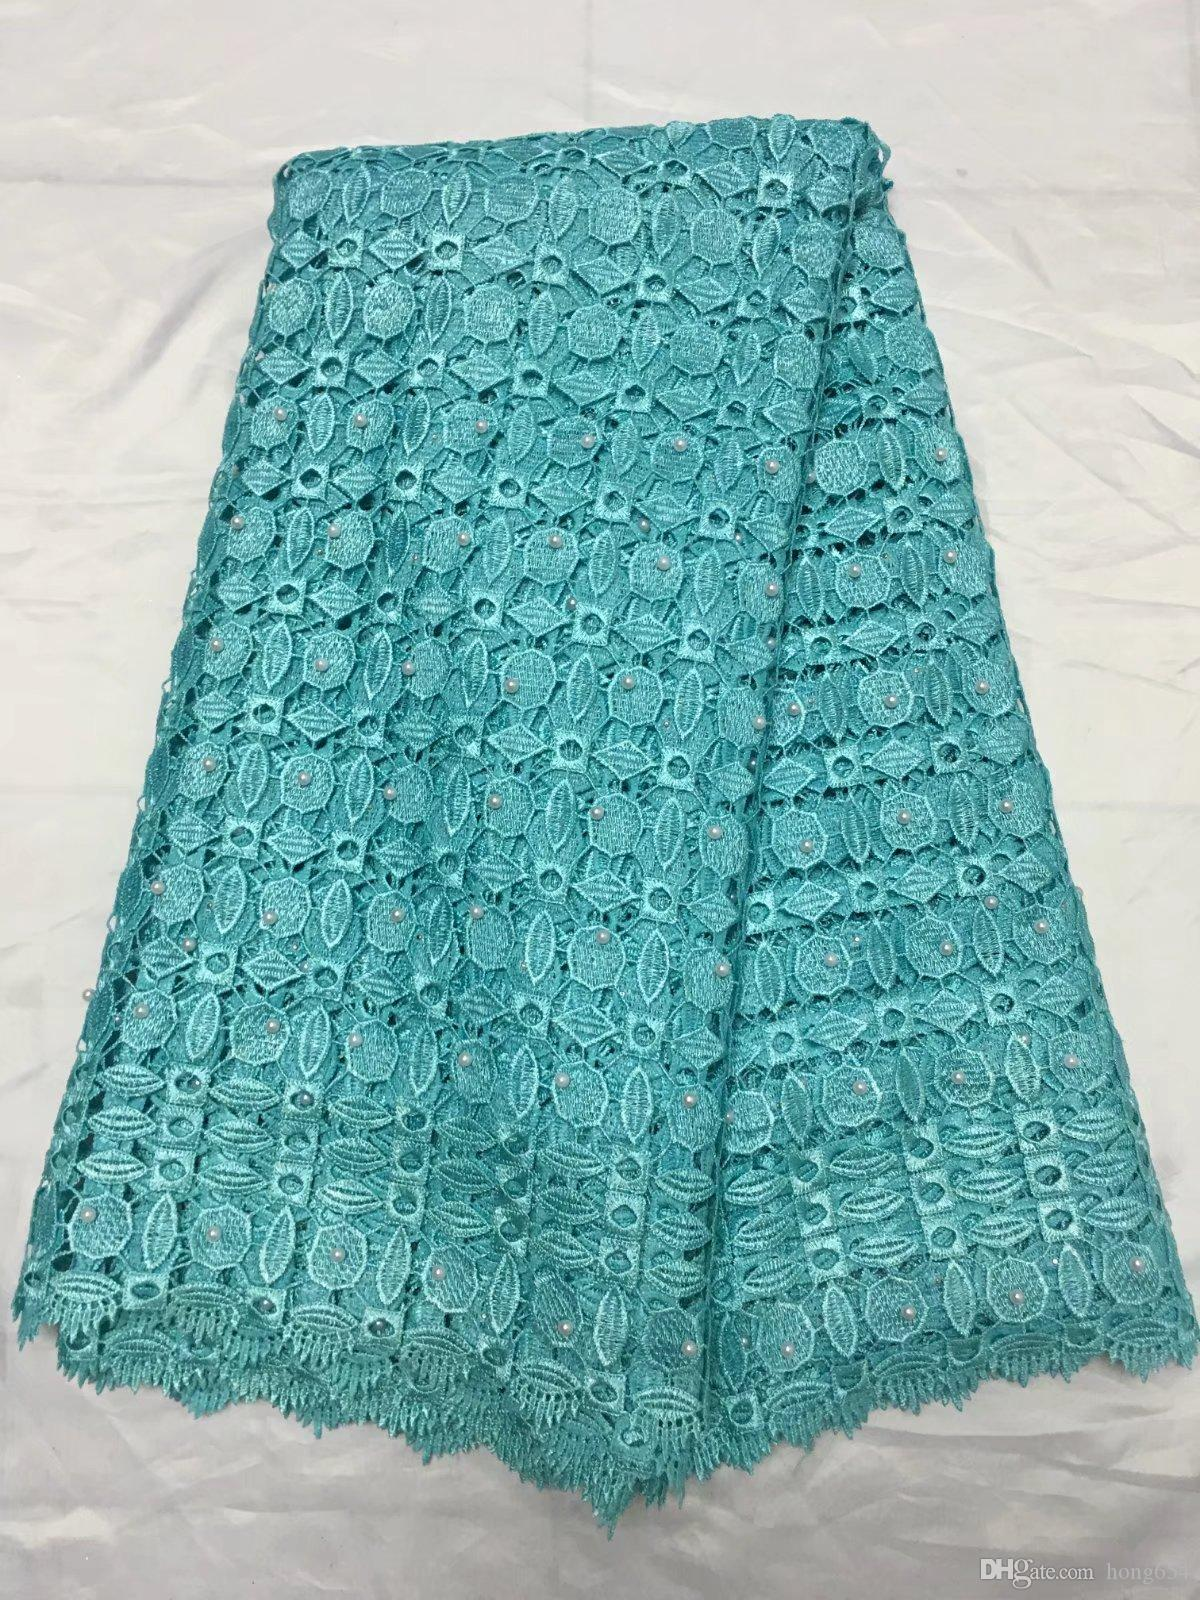 The latest red embroidery 3D dress, water-soluble bead lace, African French chiffon, high quality wedding dress 5yardYDH65